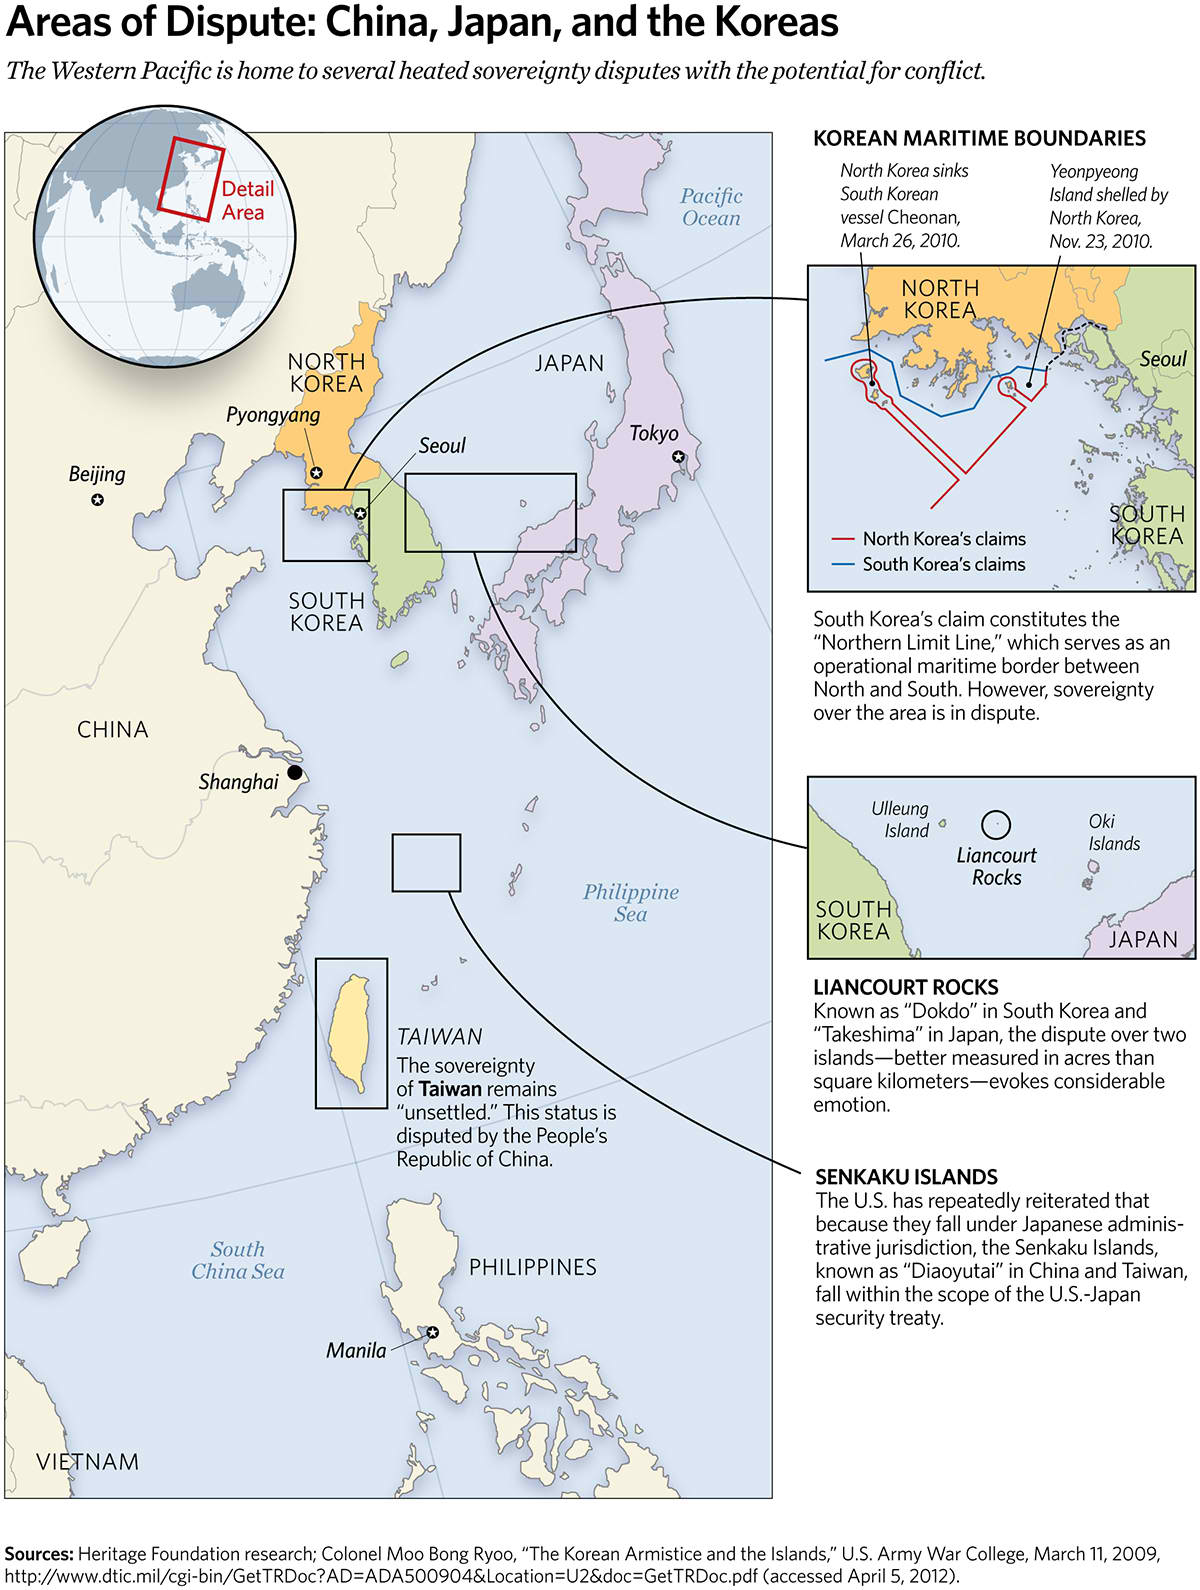 Areas of Dispute: China, Japan, and the Koreas